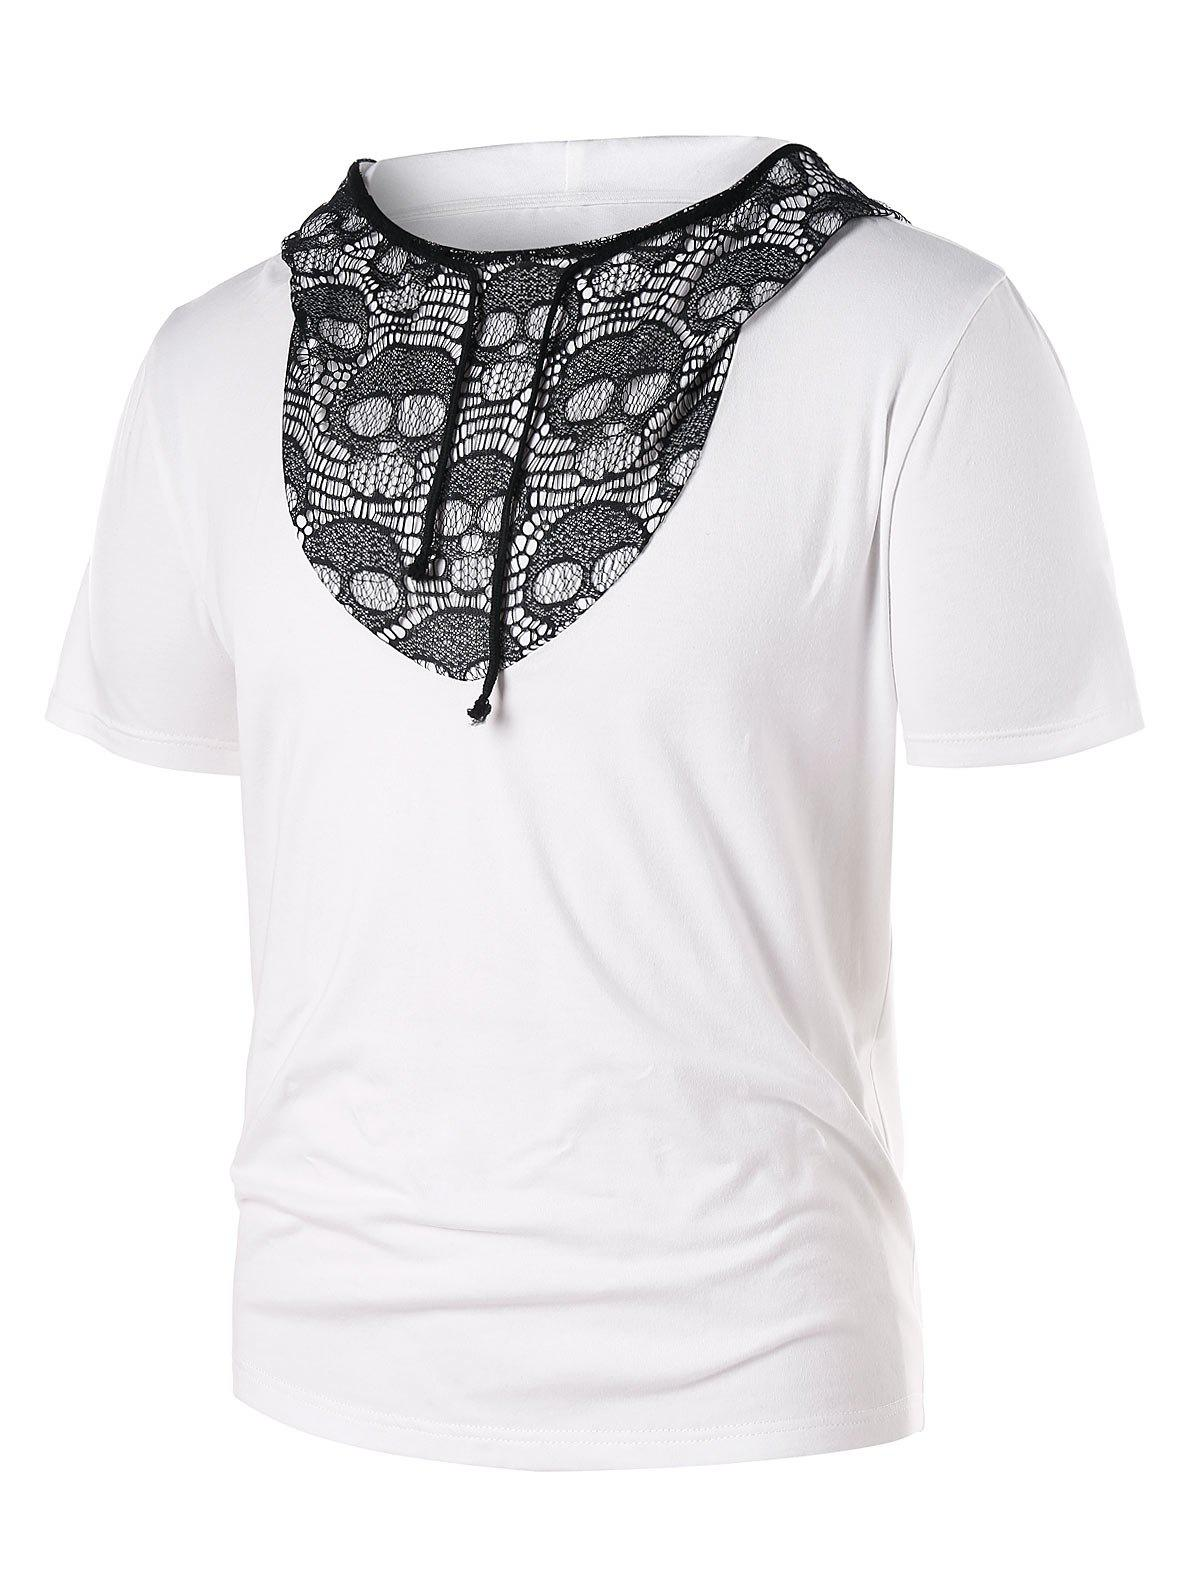 Store Hooded Skull Lace Panel Tee